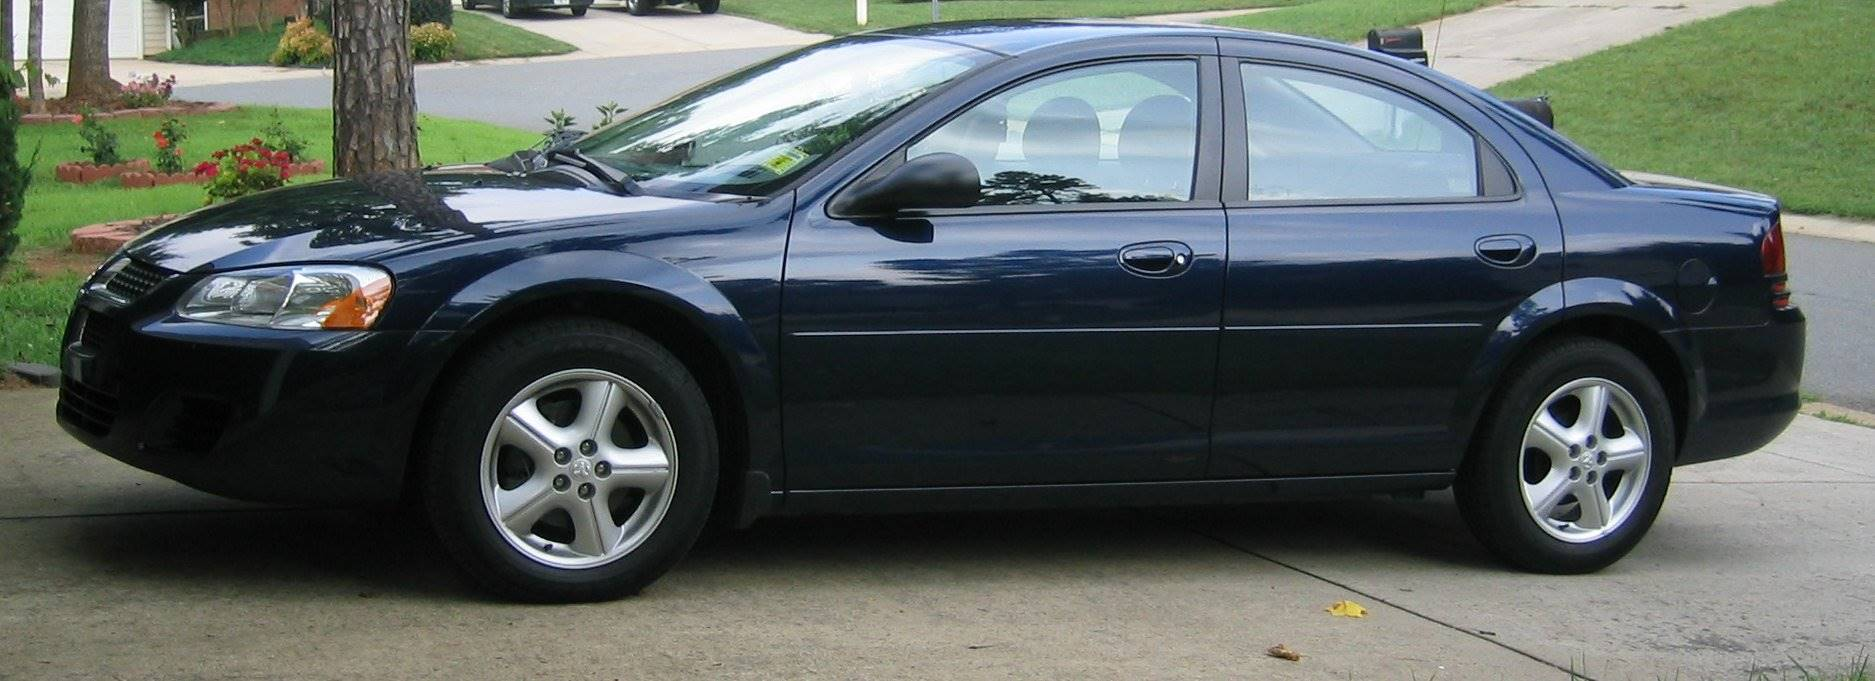 B A E A E A D D E Bdbd on 2005 Dodge Stratus Sxt Coupe